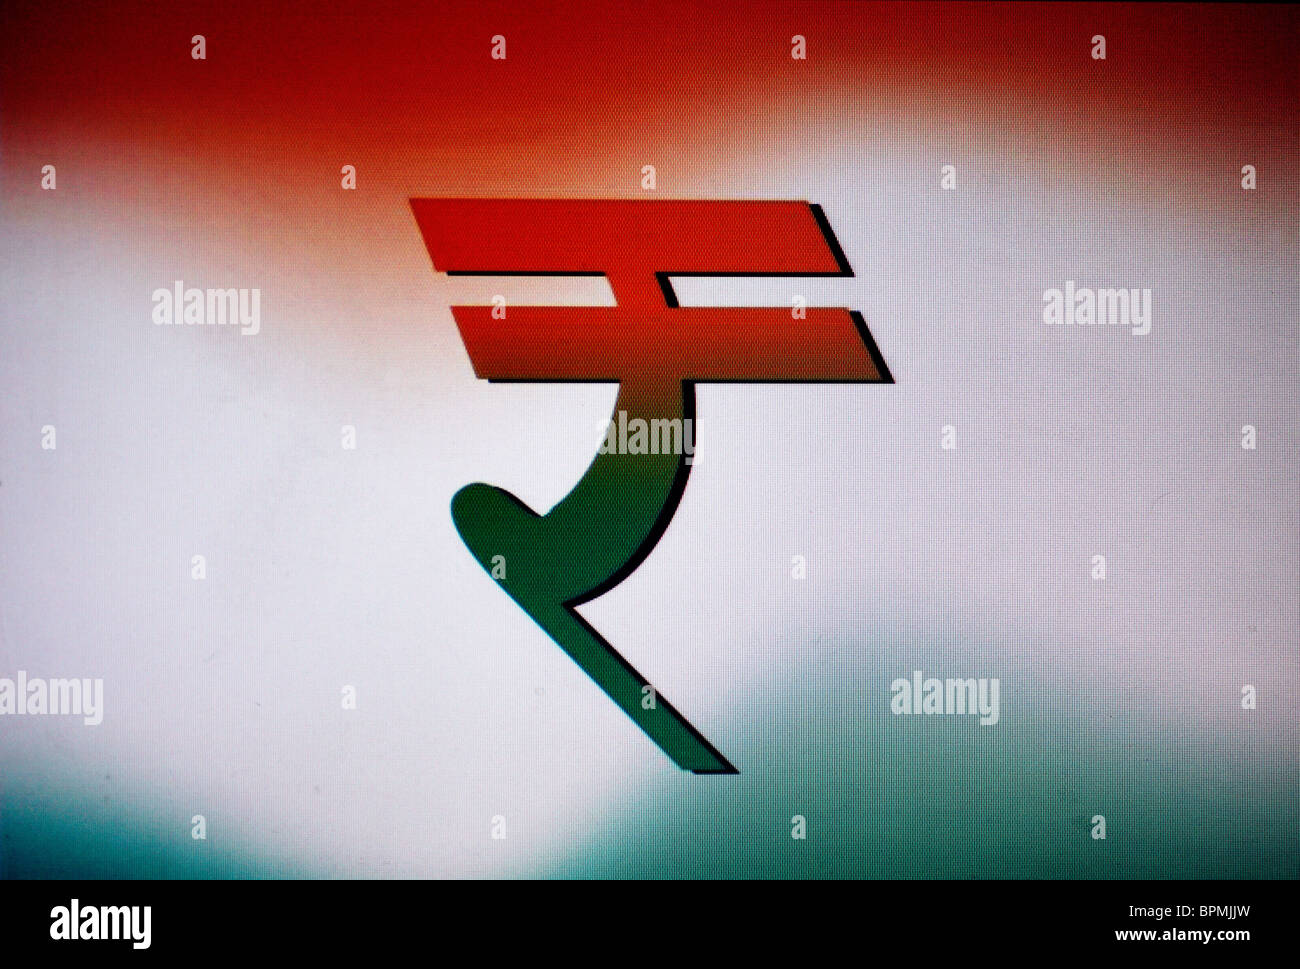 The new currency symbol for the indian rupee inr stock photo the new currency symbol for the indian rupee inr biocorpaavc Choice Image